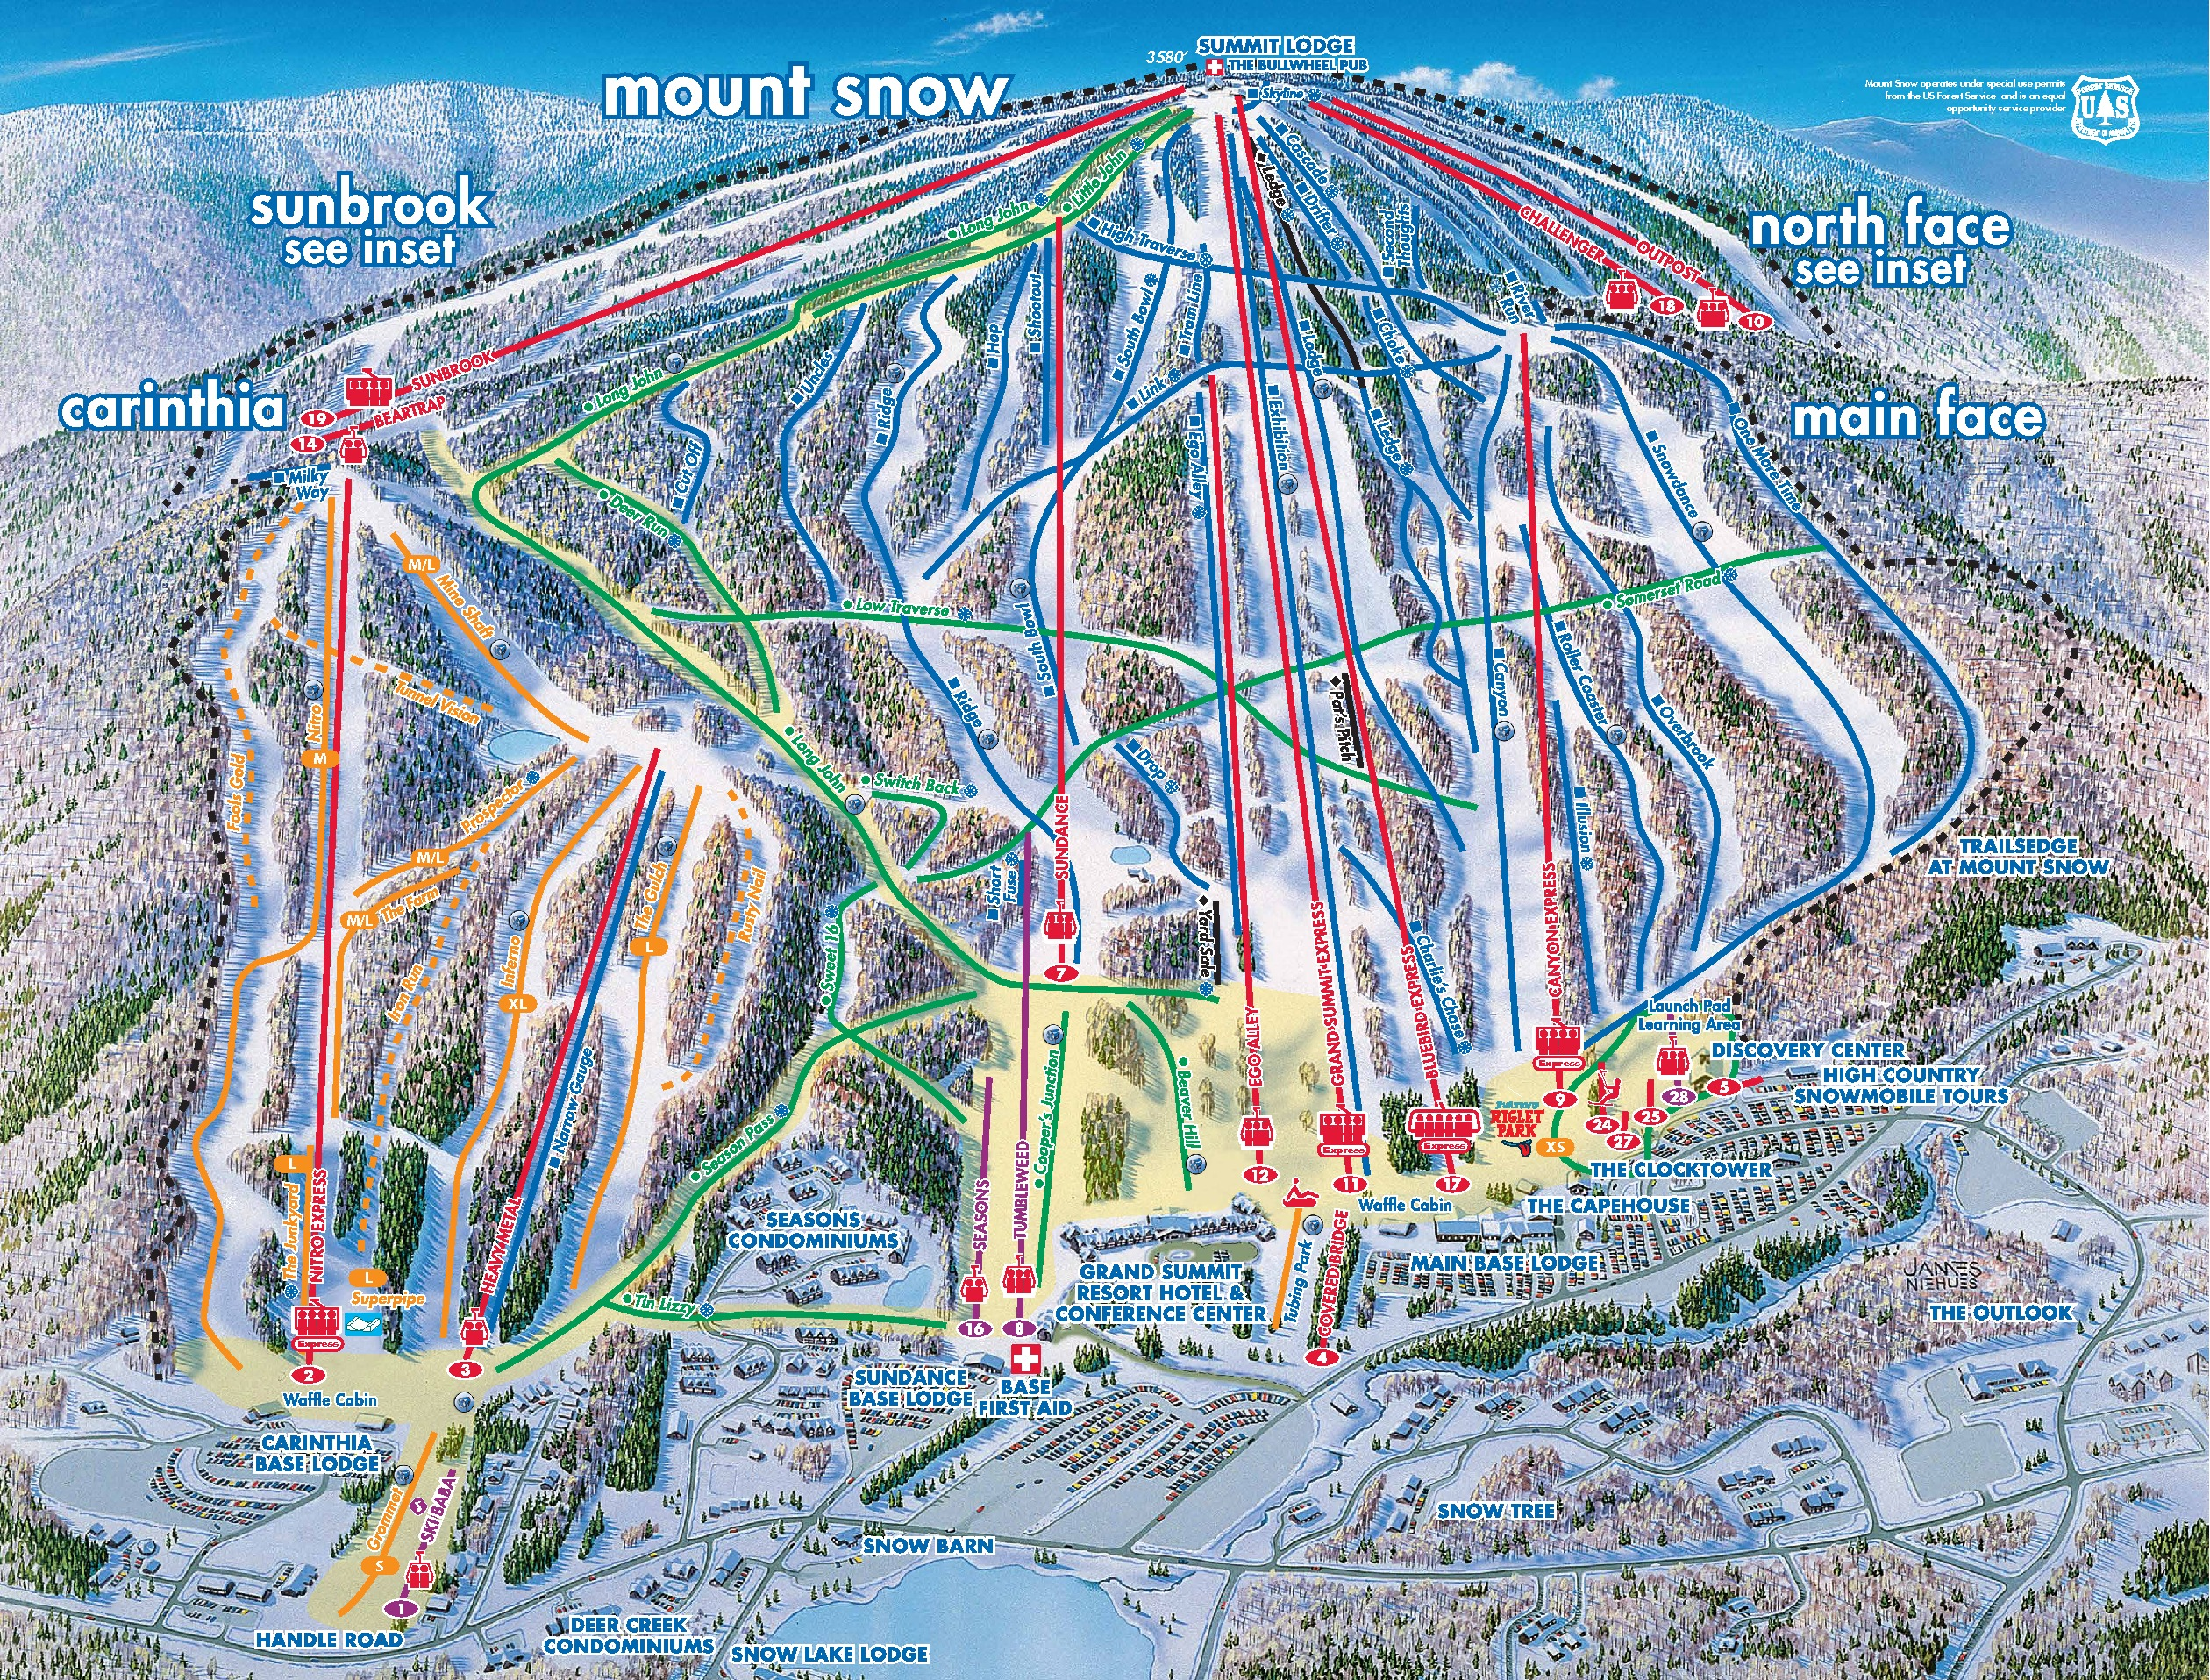 mount snow trail map. vermont trail map guide